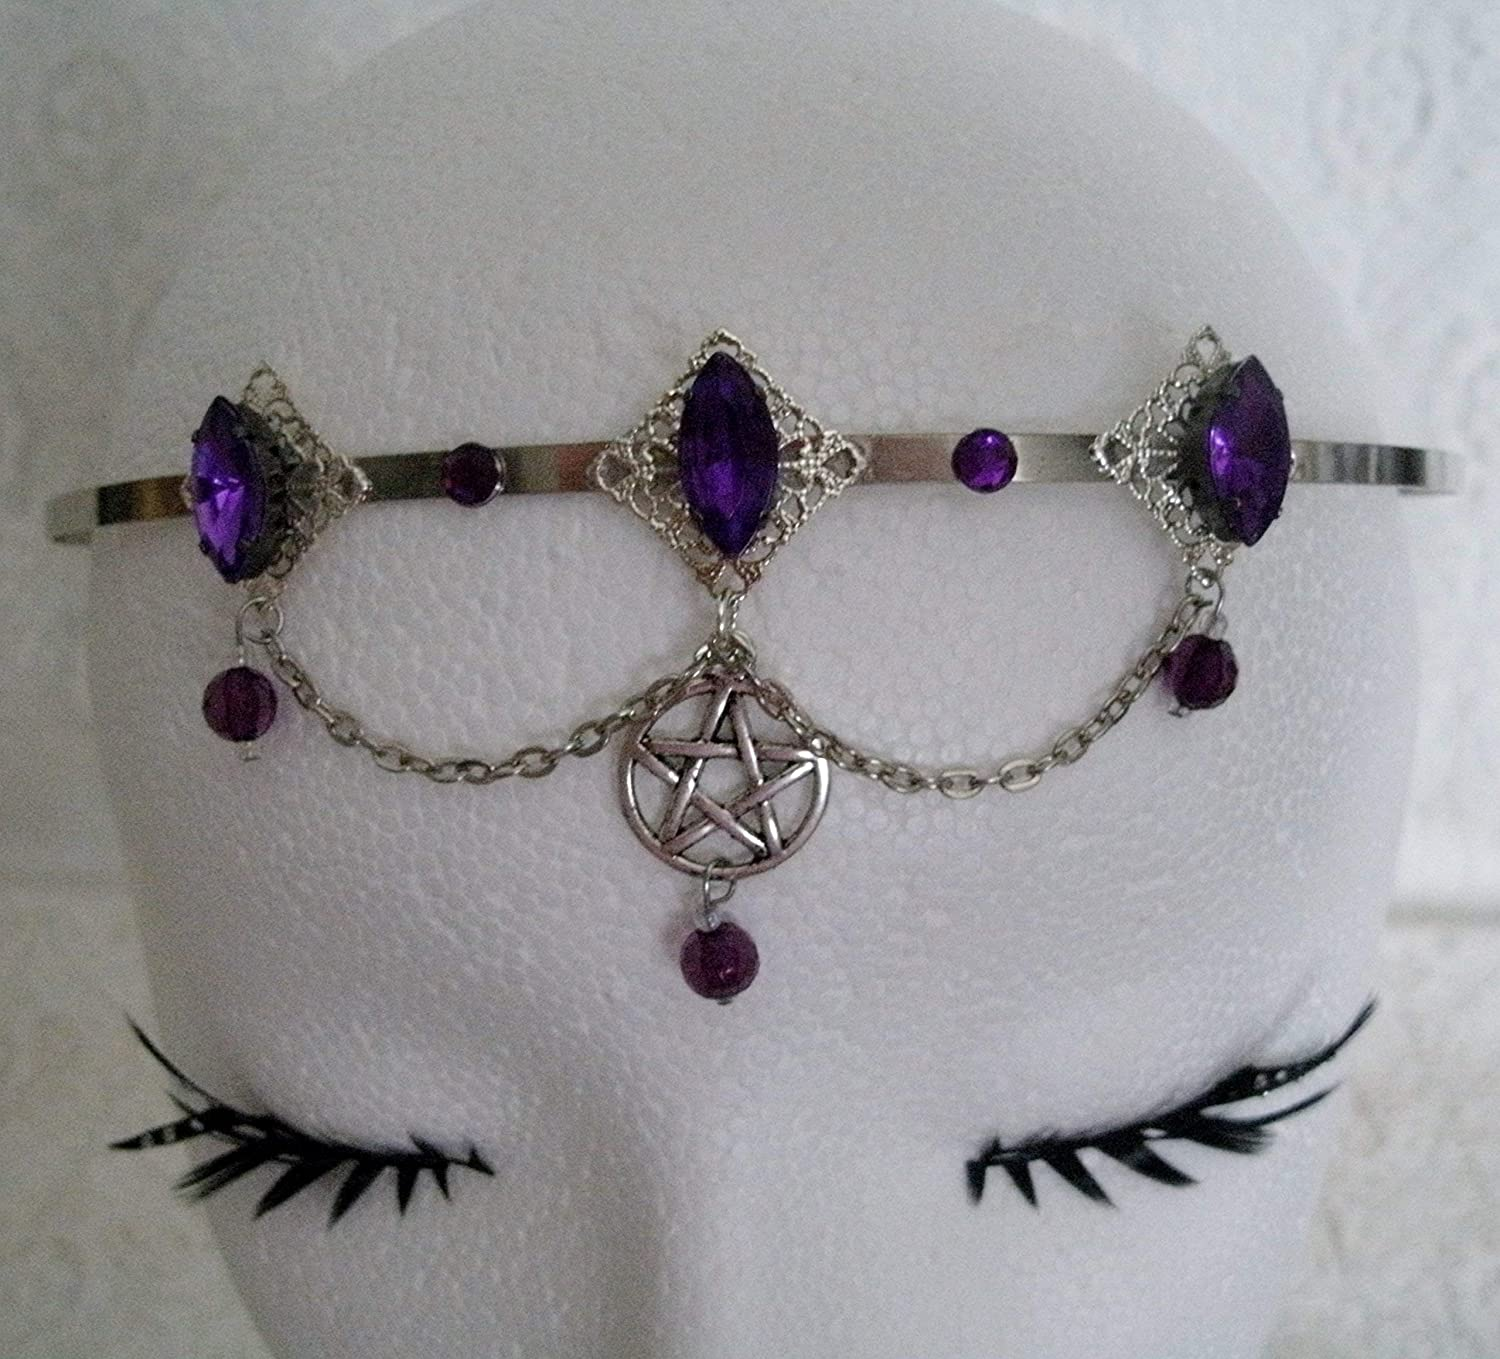 Pentacle Circlet handmade jewelry wiccan pagan wicca goddess witch witchcraft pentagram headpiece handfasting